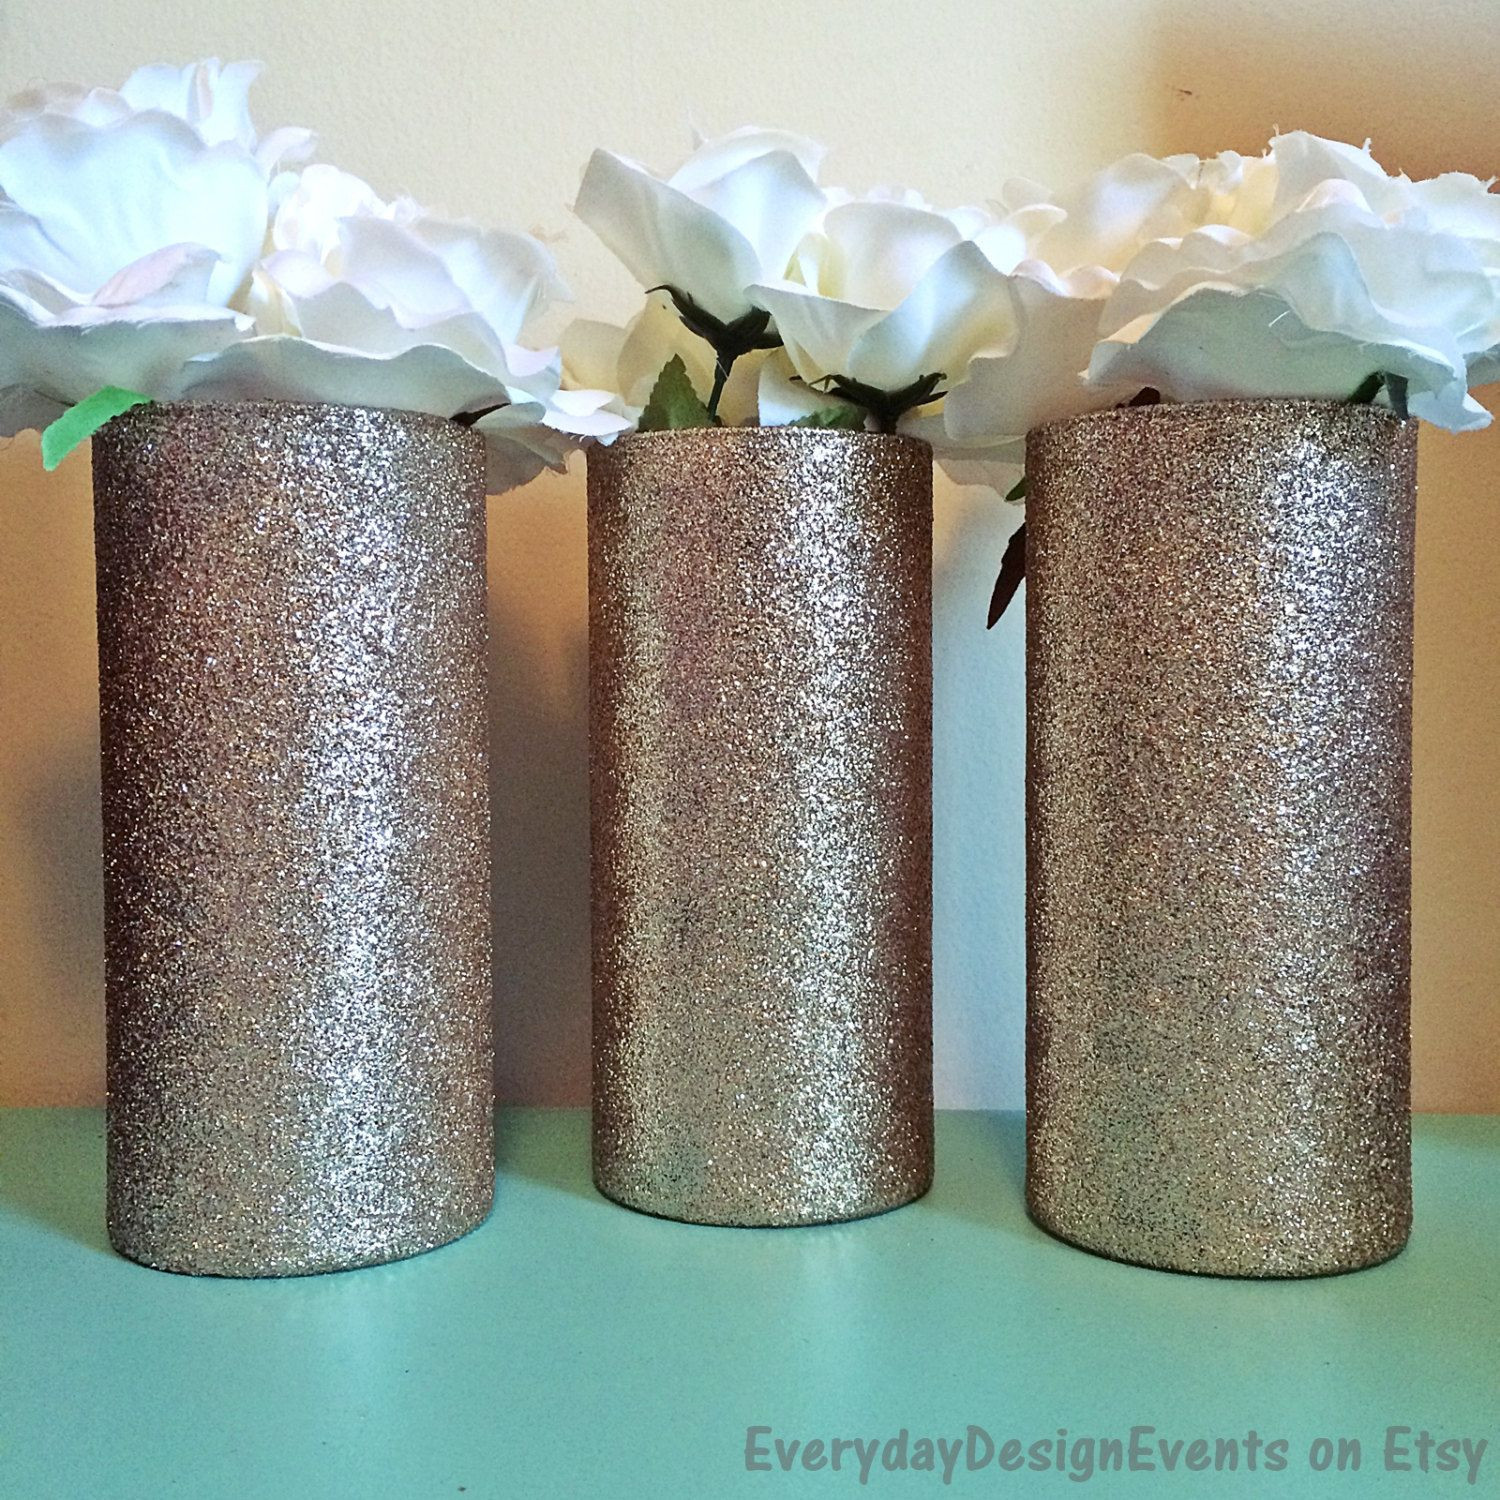 vase for gold dipped roses of gold cylinder vases image vases disposable plastic single cheap intended for gold cylinder vases stock 3 champagne gold glass vases gold vases wedding centerpieces gold of gold